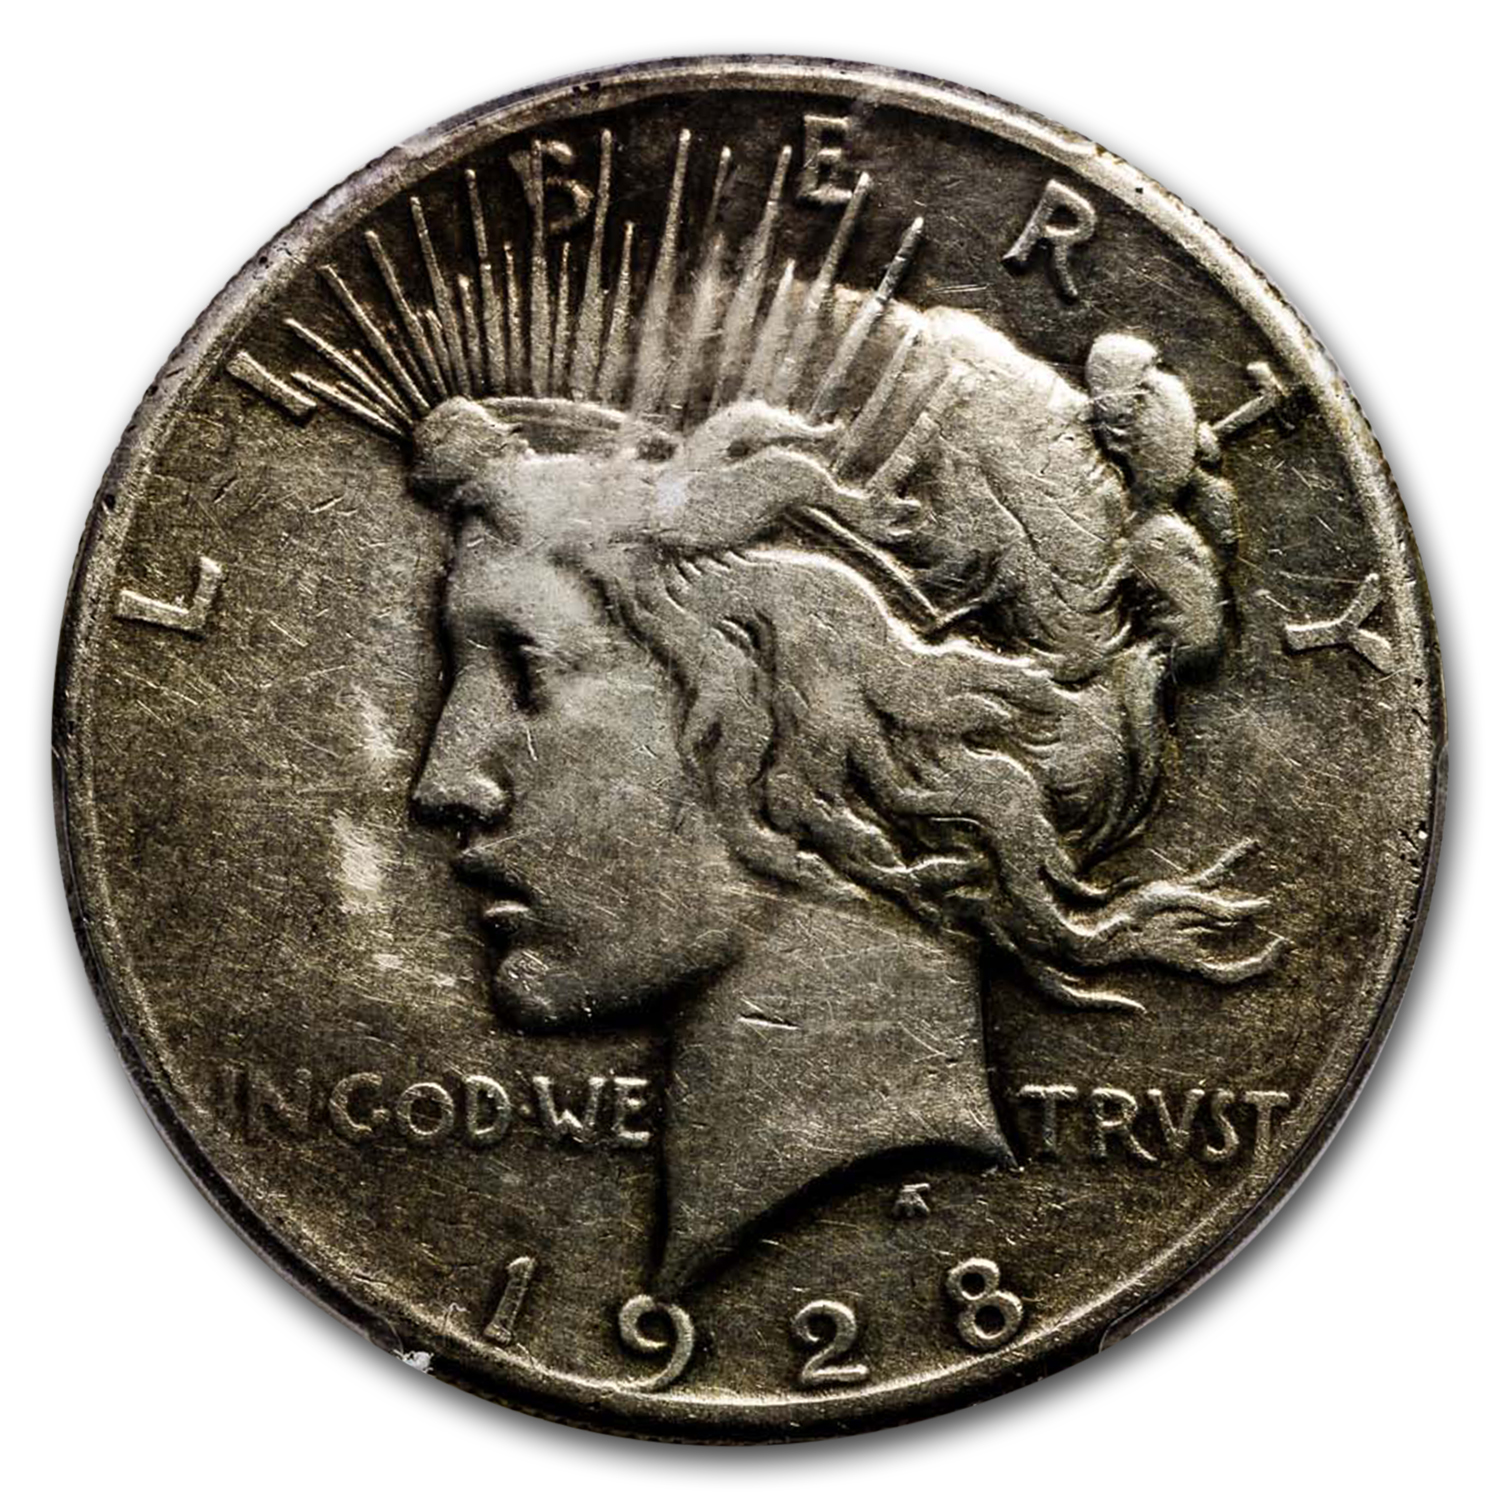 1928 Peace Dollar - Very Good